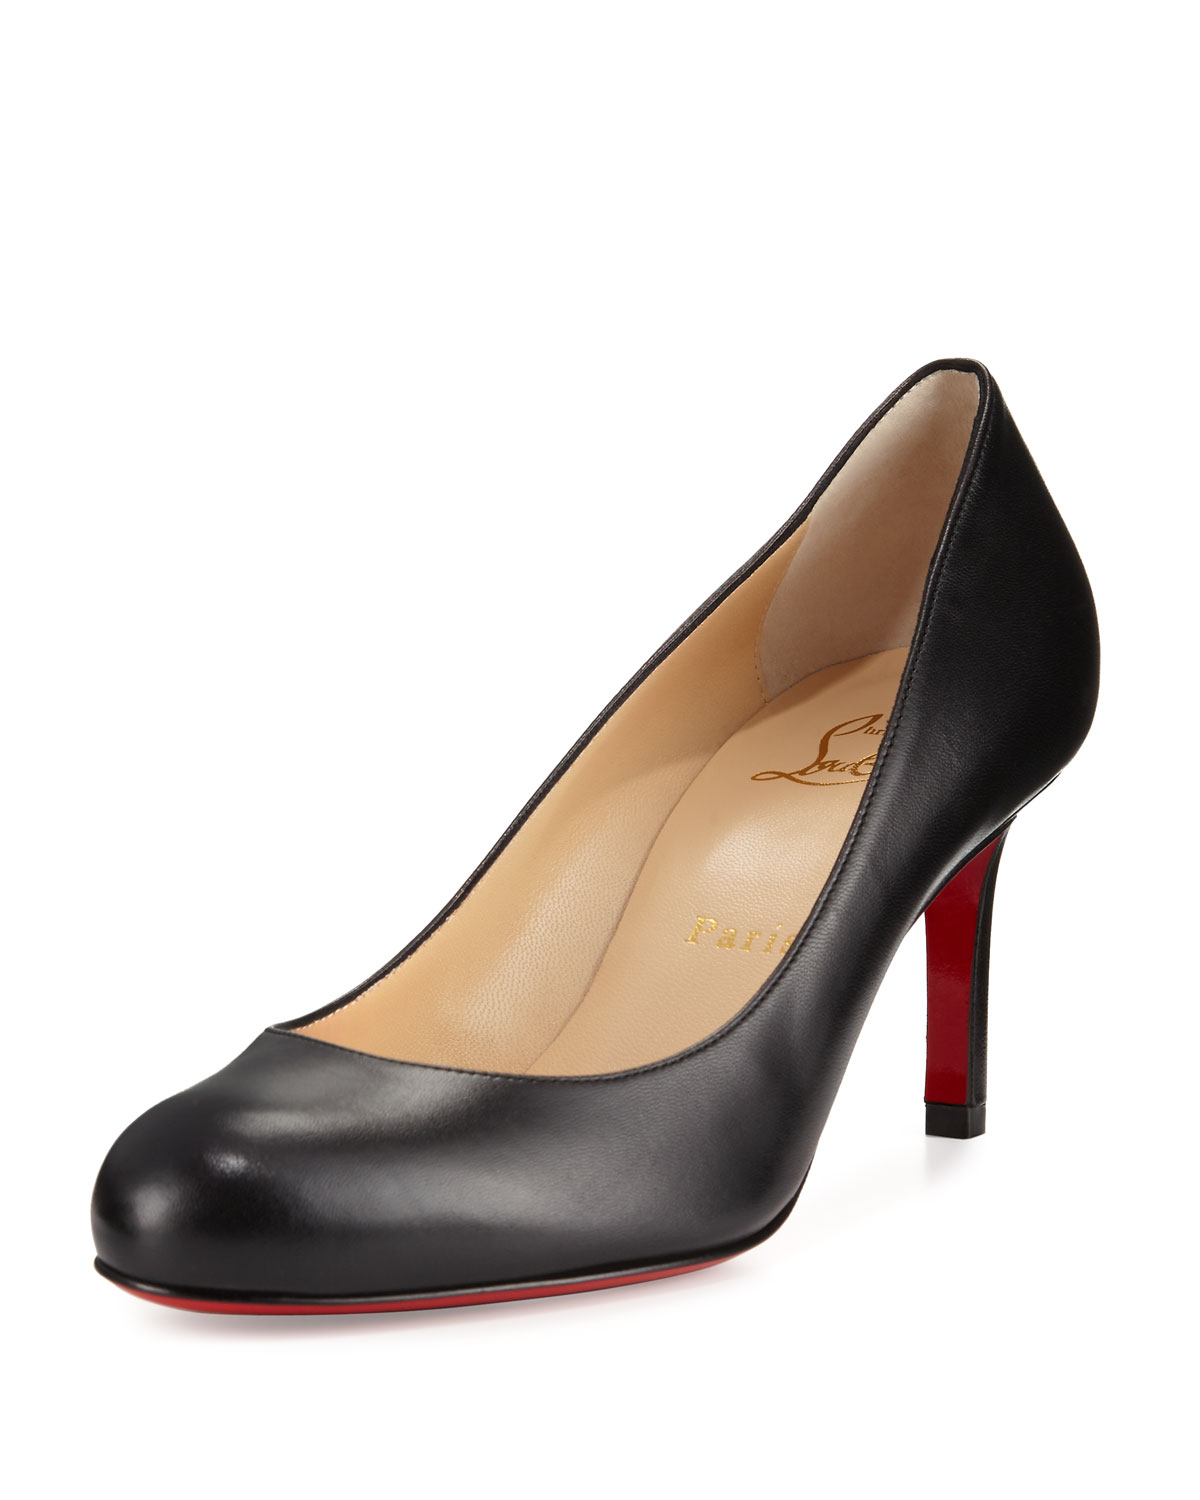 Christian Louboutin Simple Leather 70mm Red Sole Pump 4fc749651471